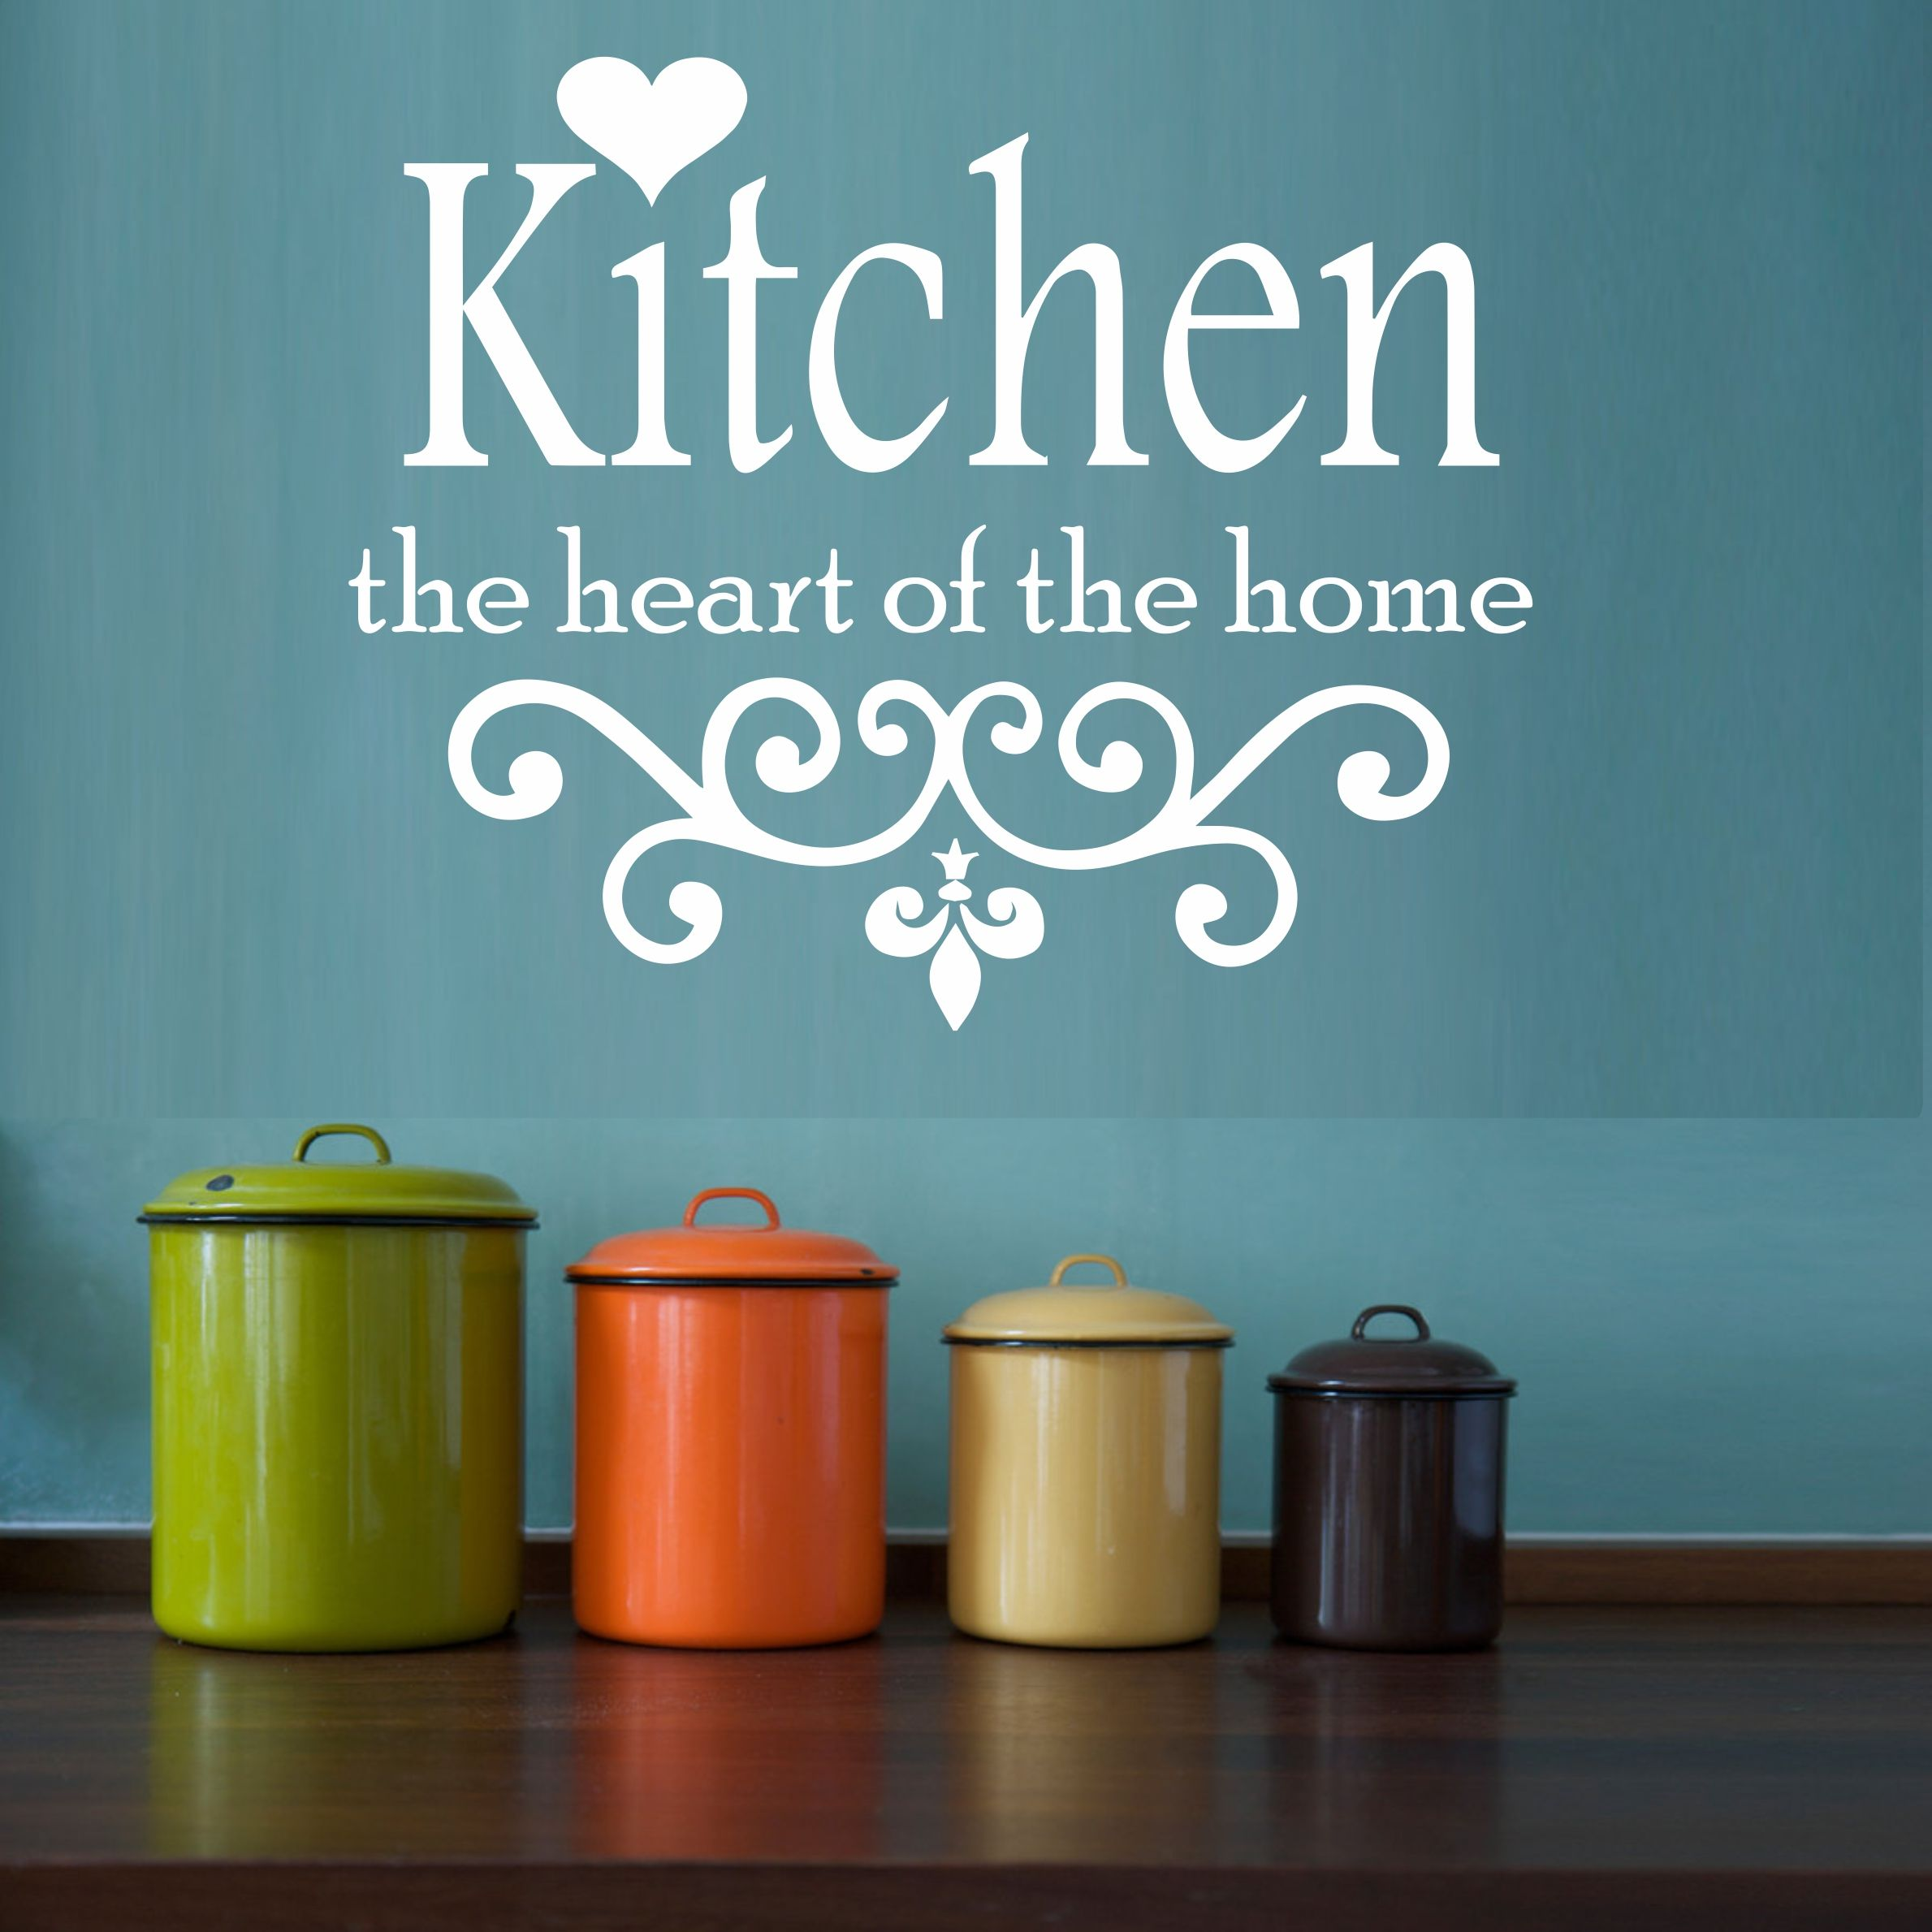 Kitchen Heart Of The Home Beauteous Kitchen The Heart Of The Home  Home Design Review